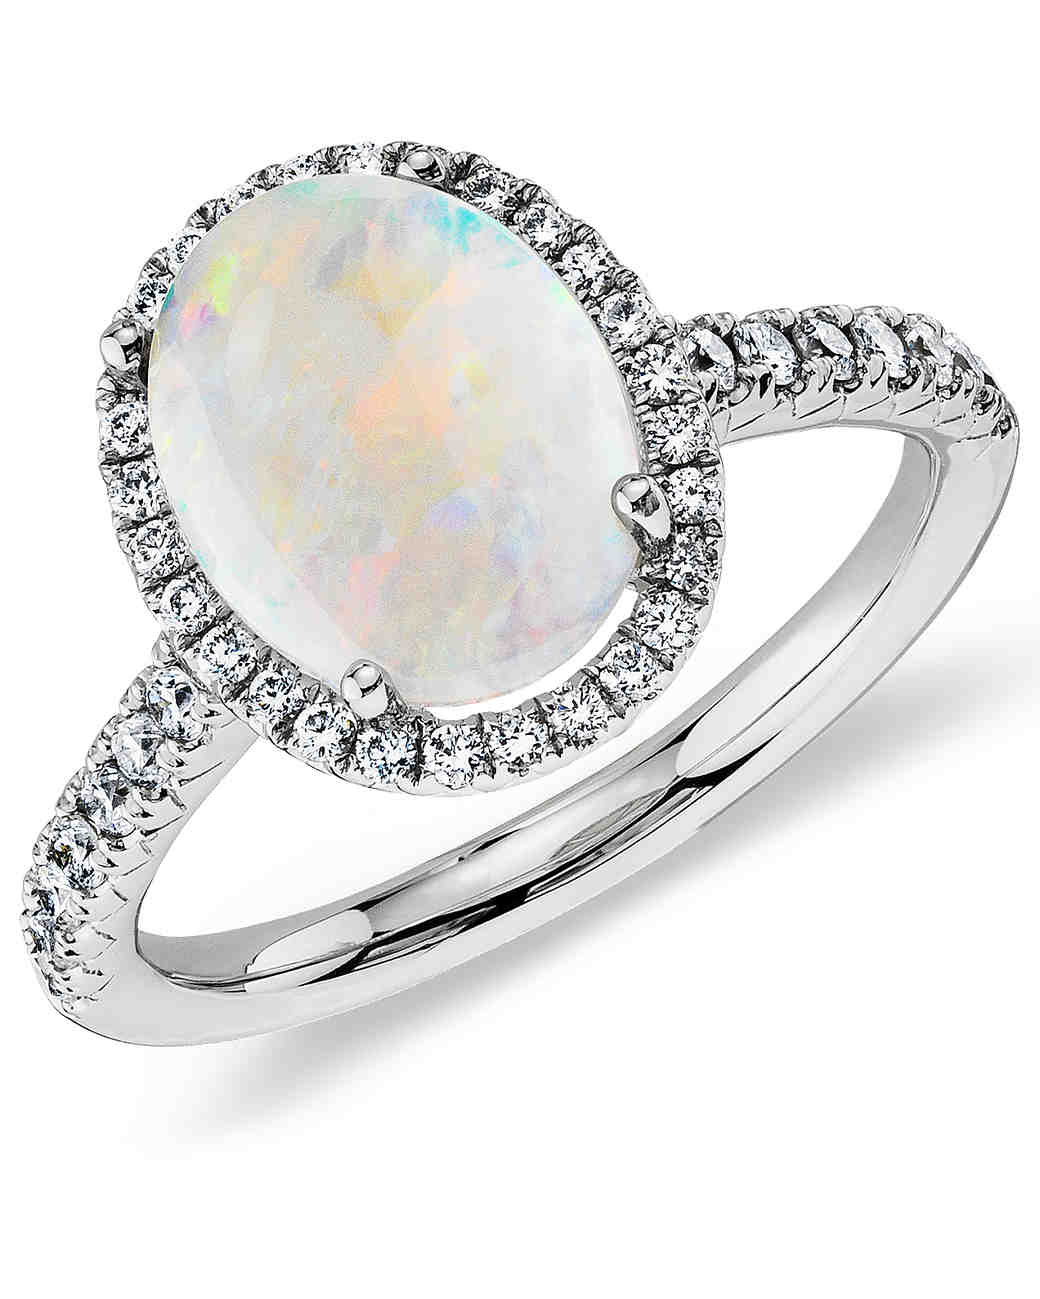 Opal Engagement Rings That Are Oh So Dreamy Martha Stewart Weddings